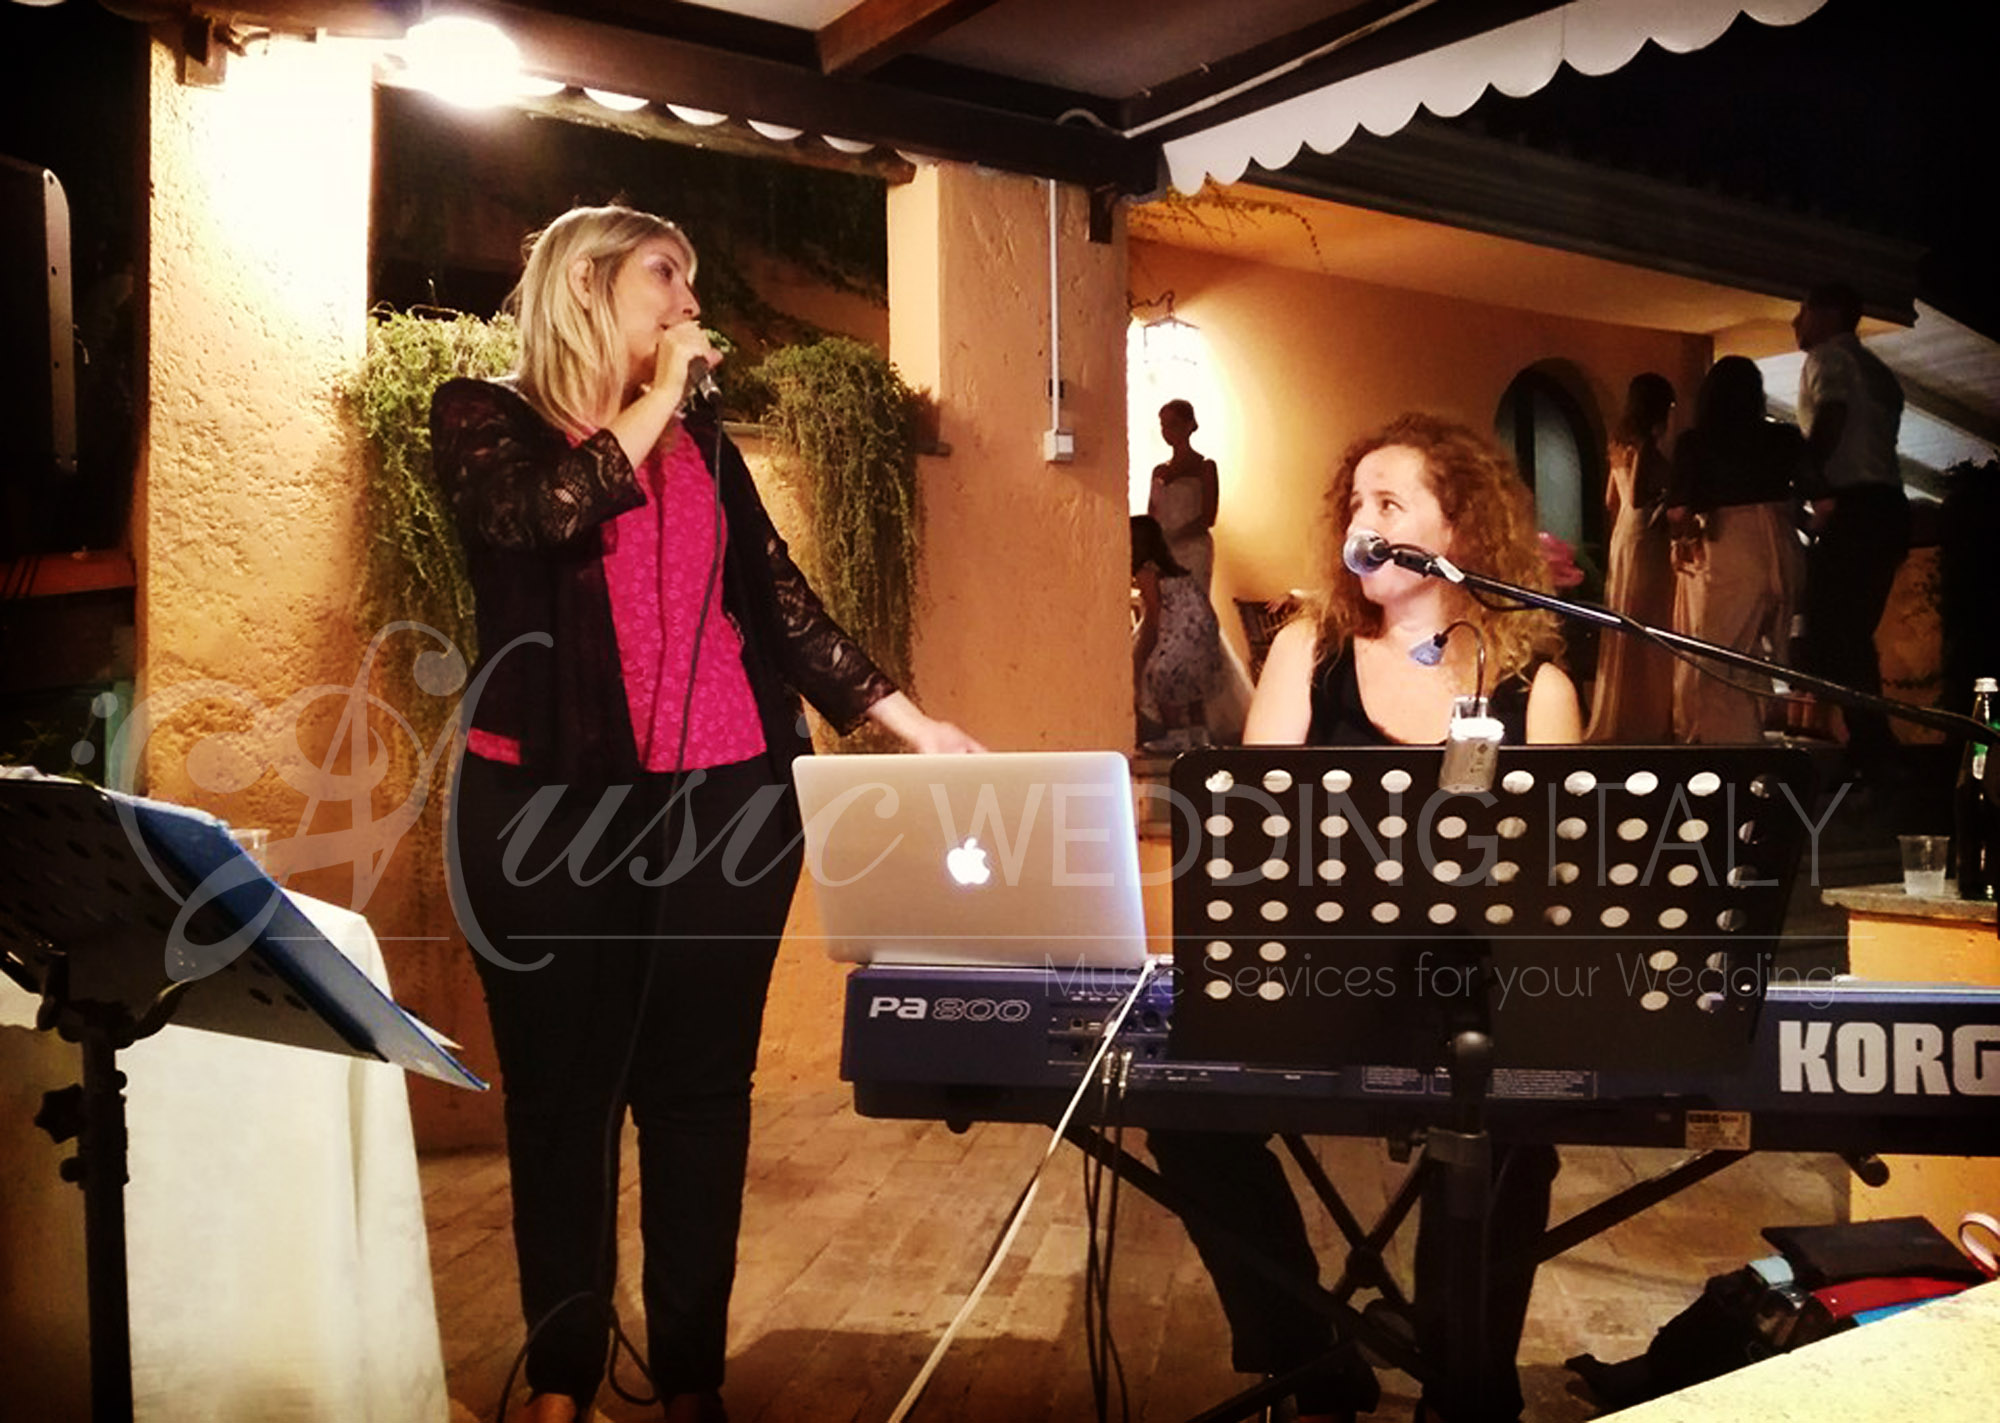 DUO singer and pianist for wedding